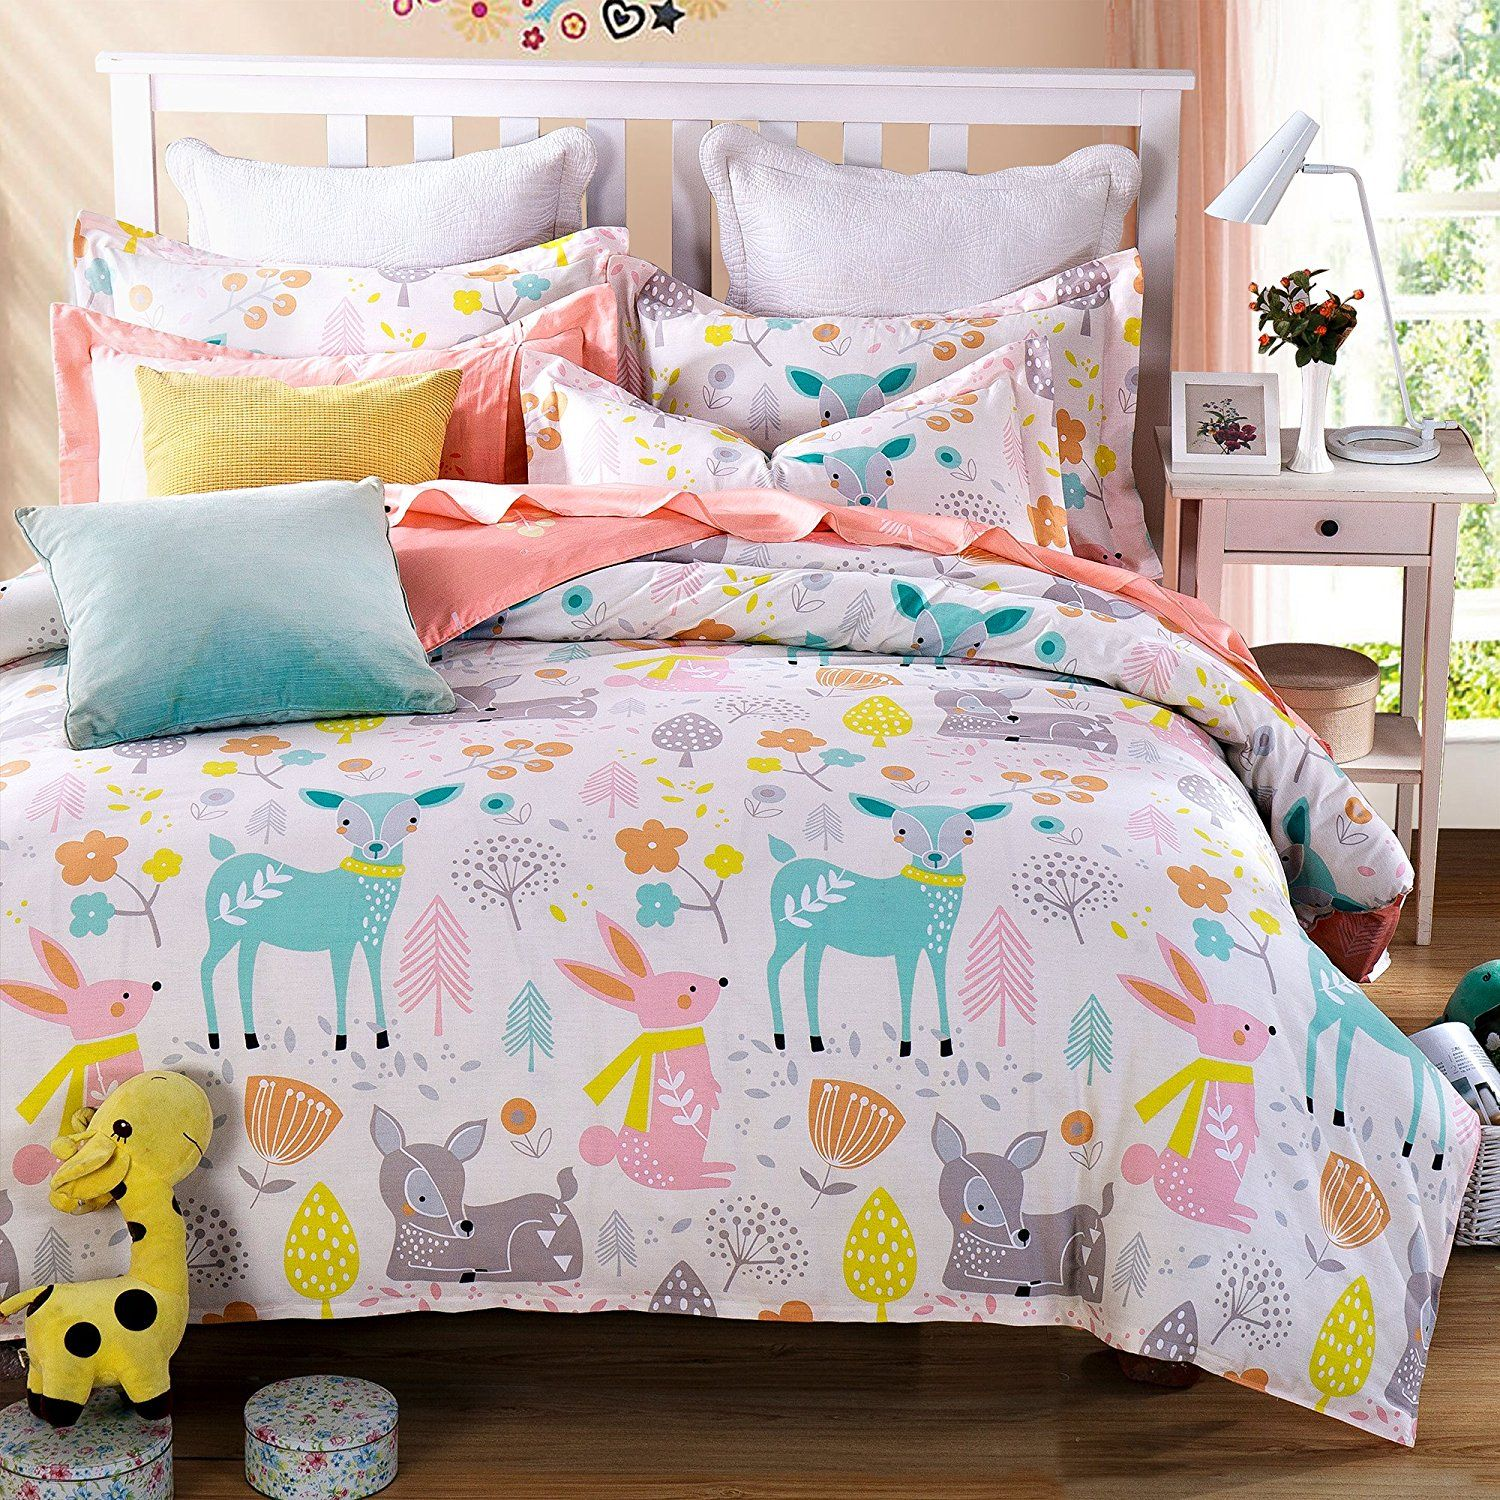 Cliab Woodland Animal Friends Deer Rabbit Flower Bedding